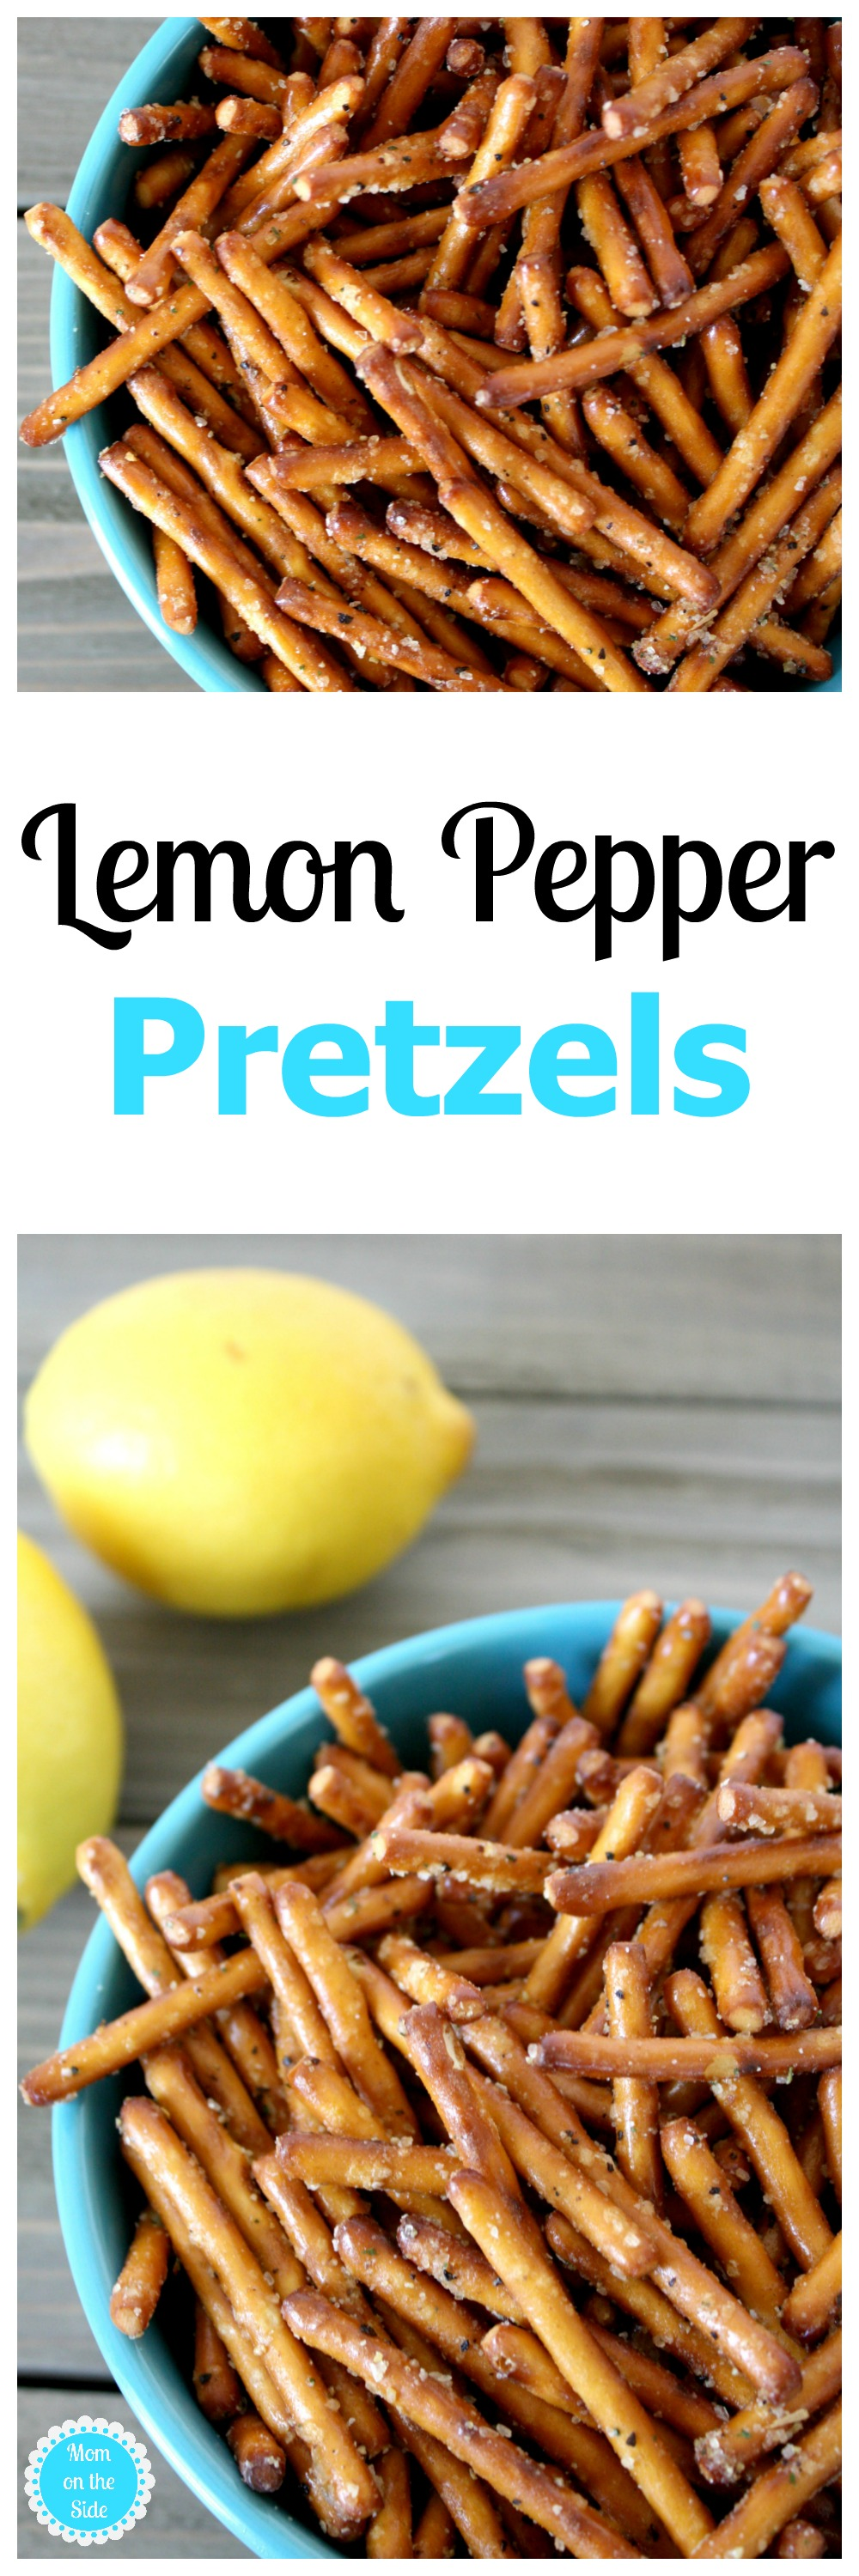 Lemon Pepper Pretzels for Parties